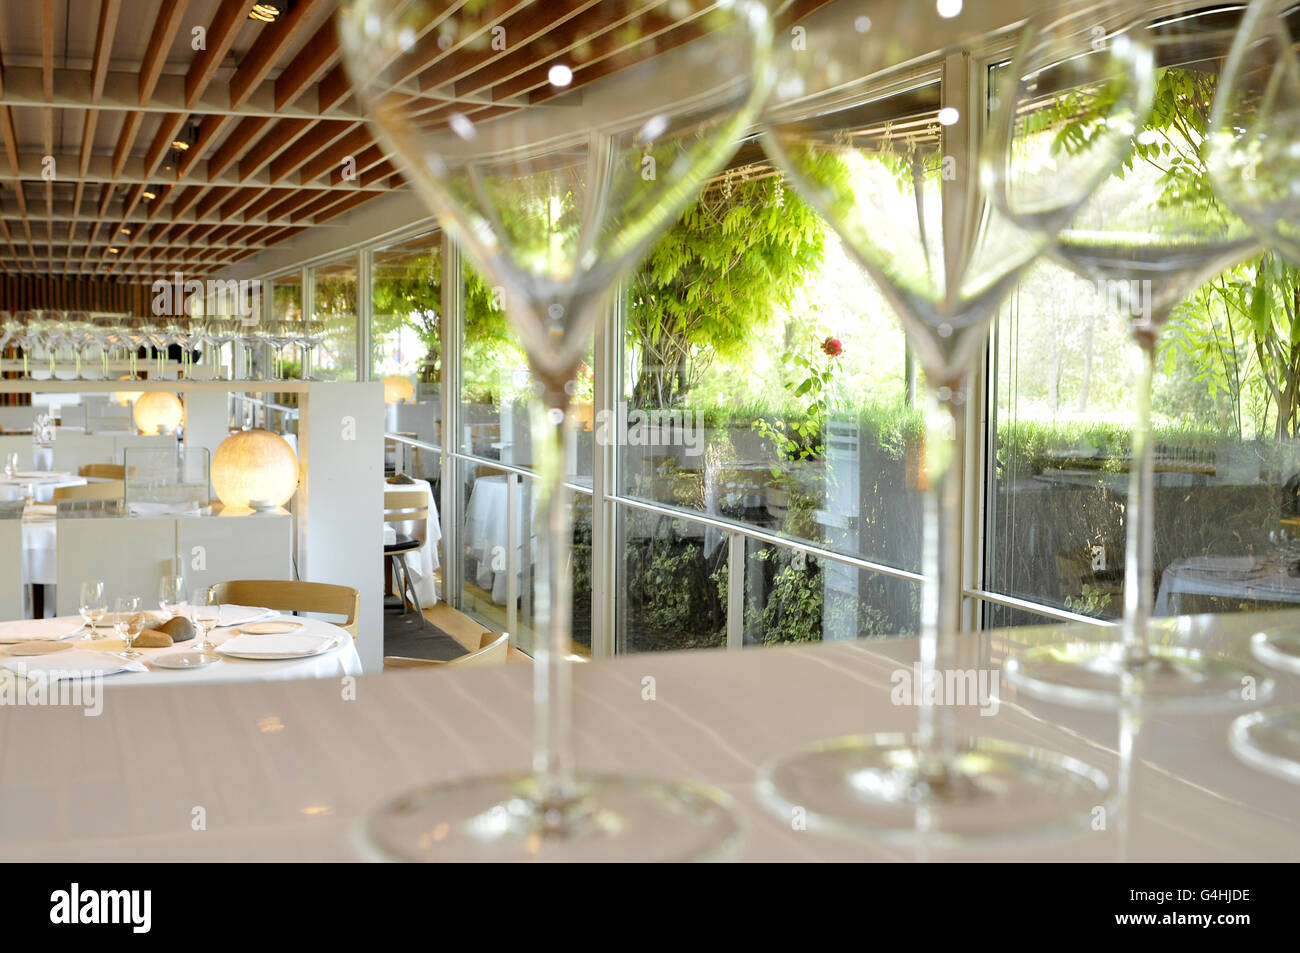 El Celler de Can Roca restaurant in Girona, Catalonia, Spain. - Stock Image